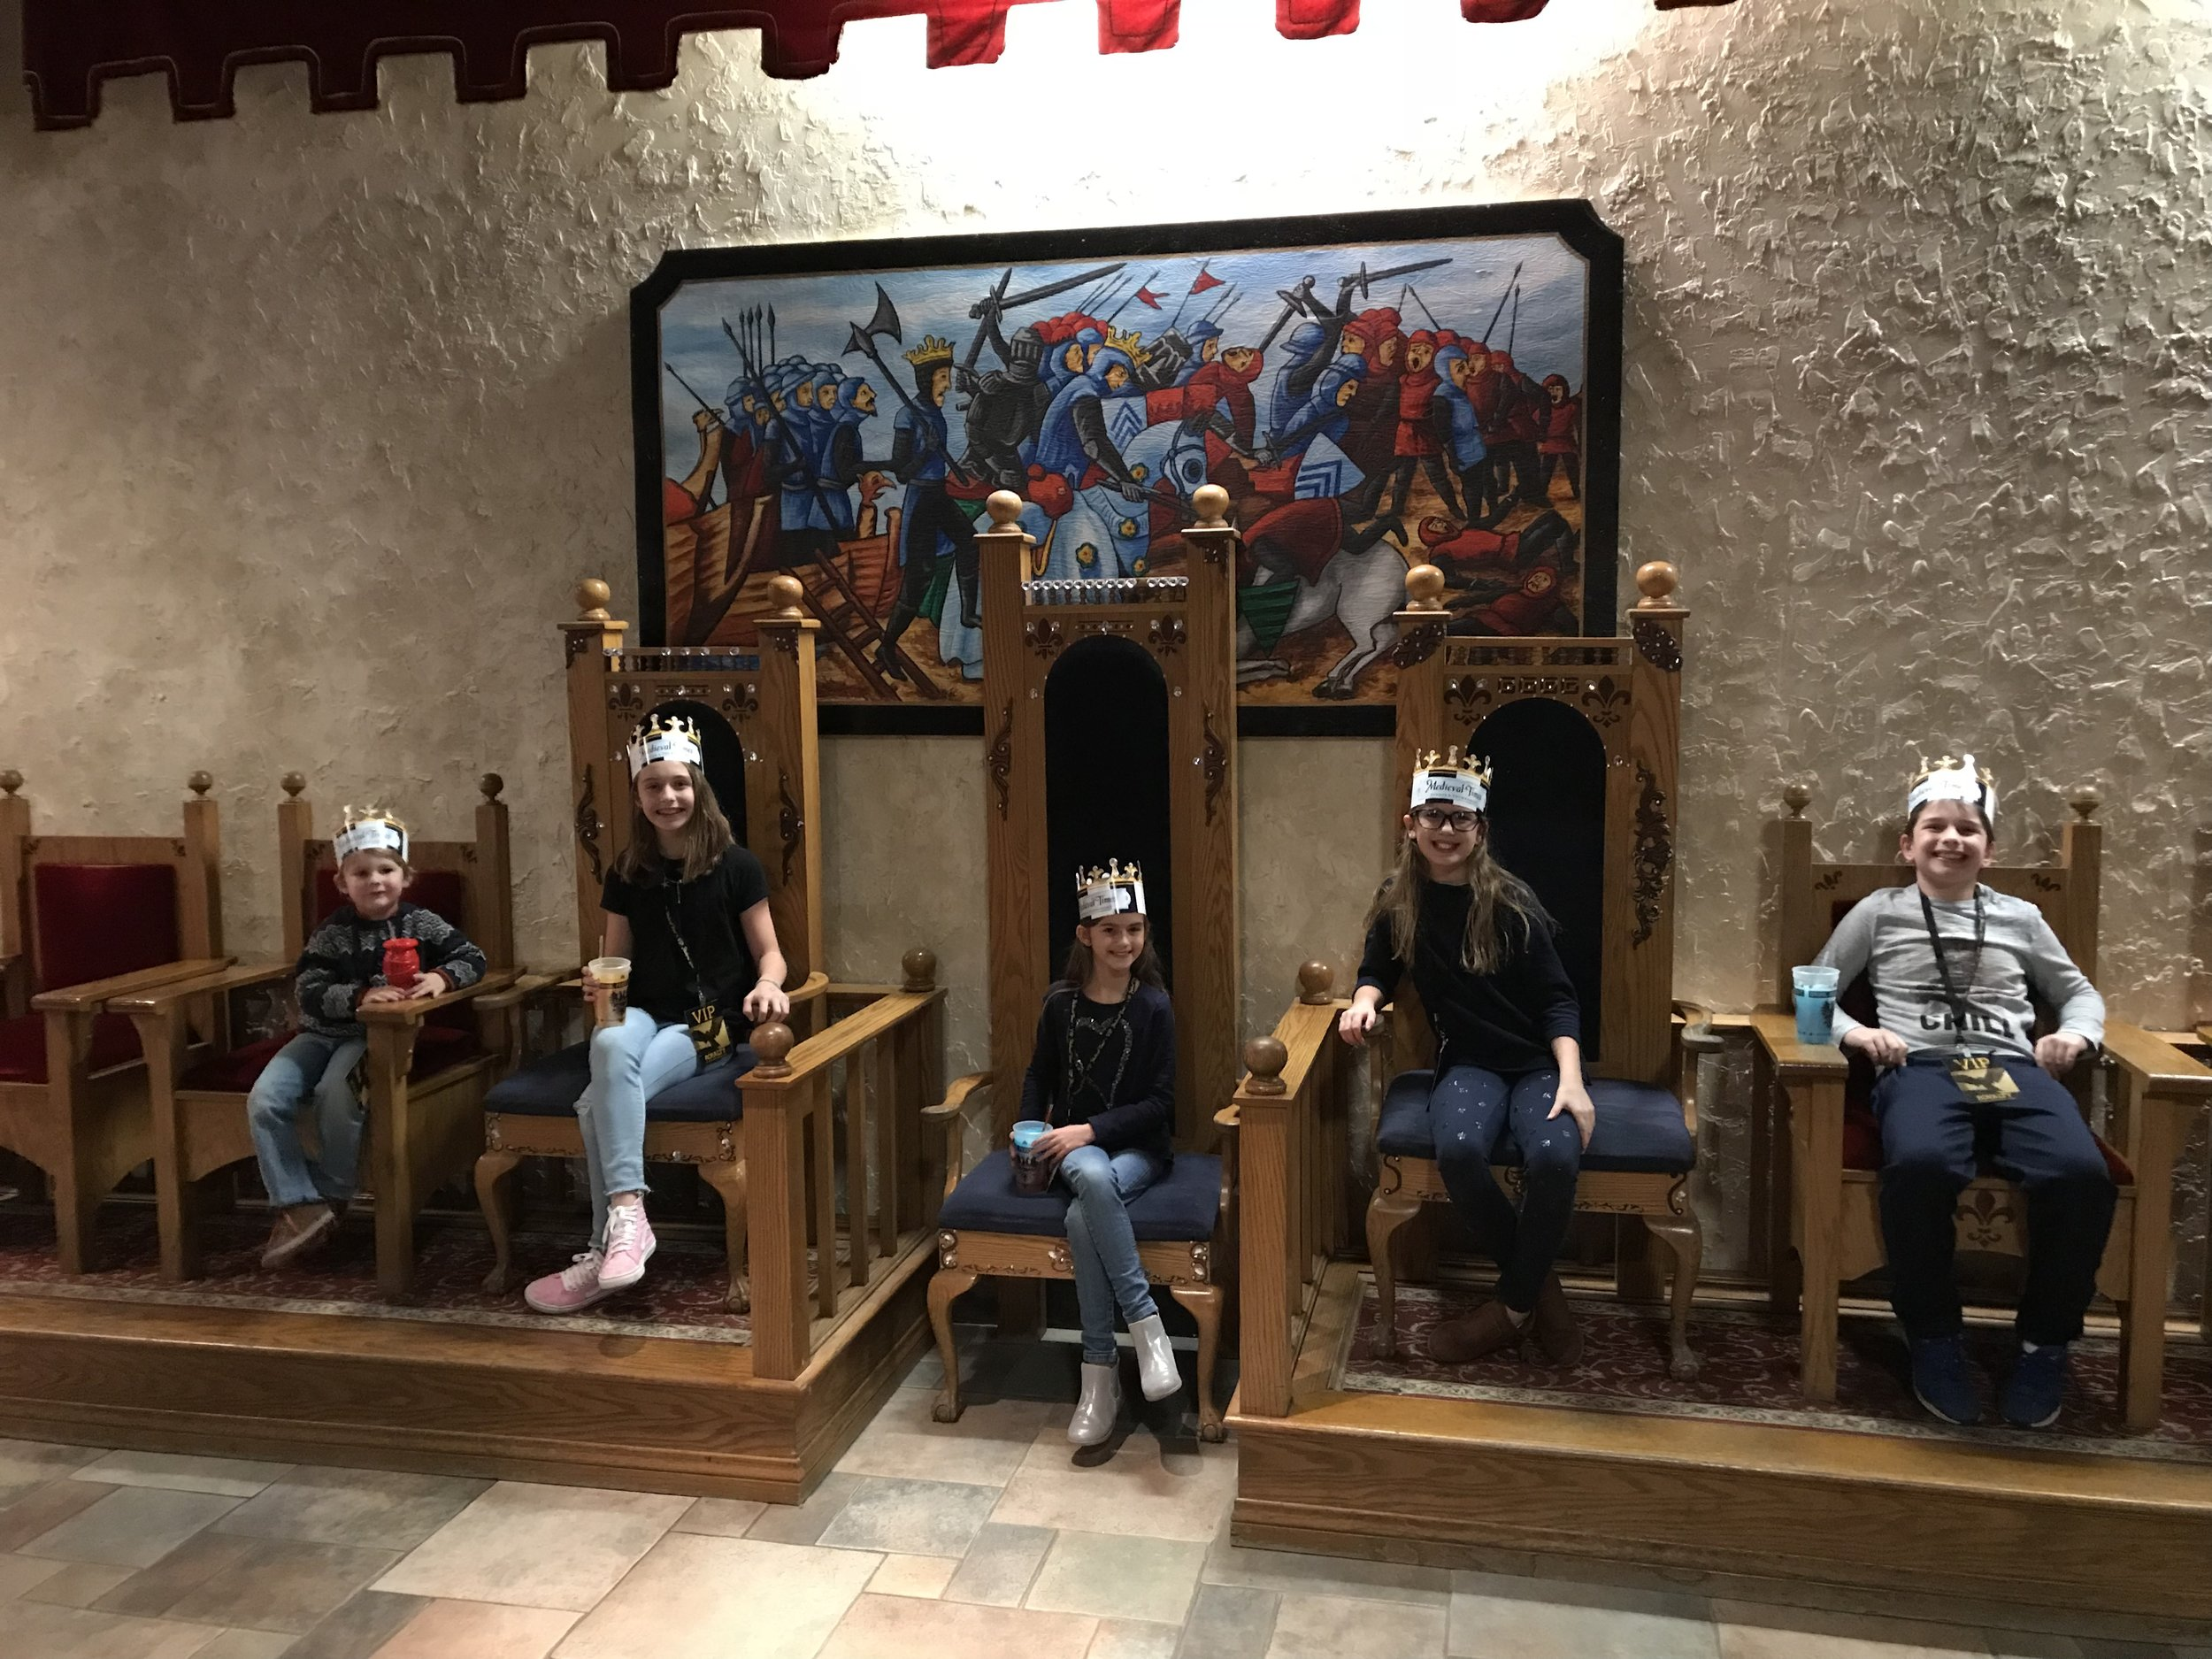 Thanks to Medieval Times for inviting us to dinner and the tournament!